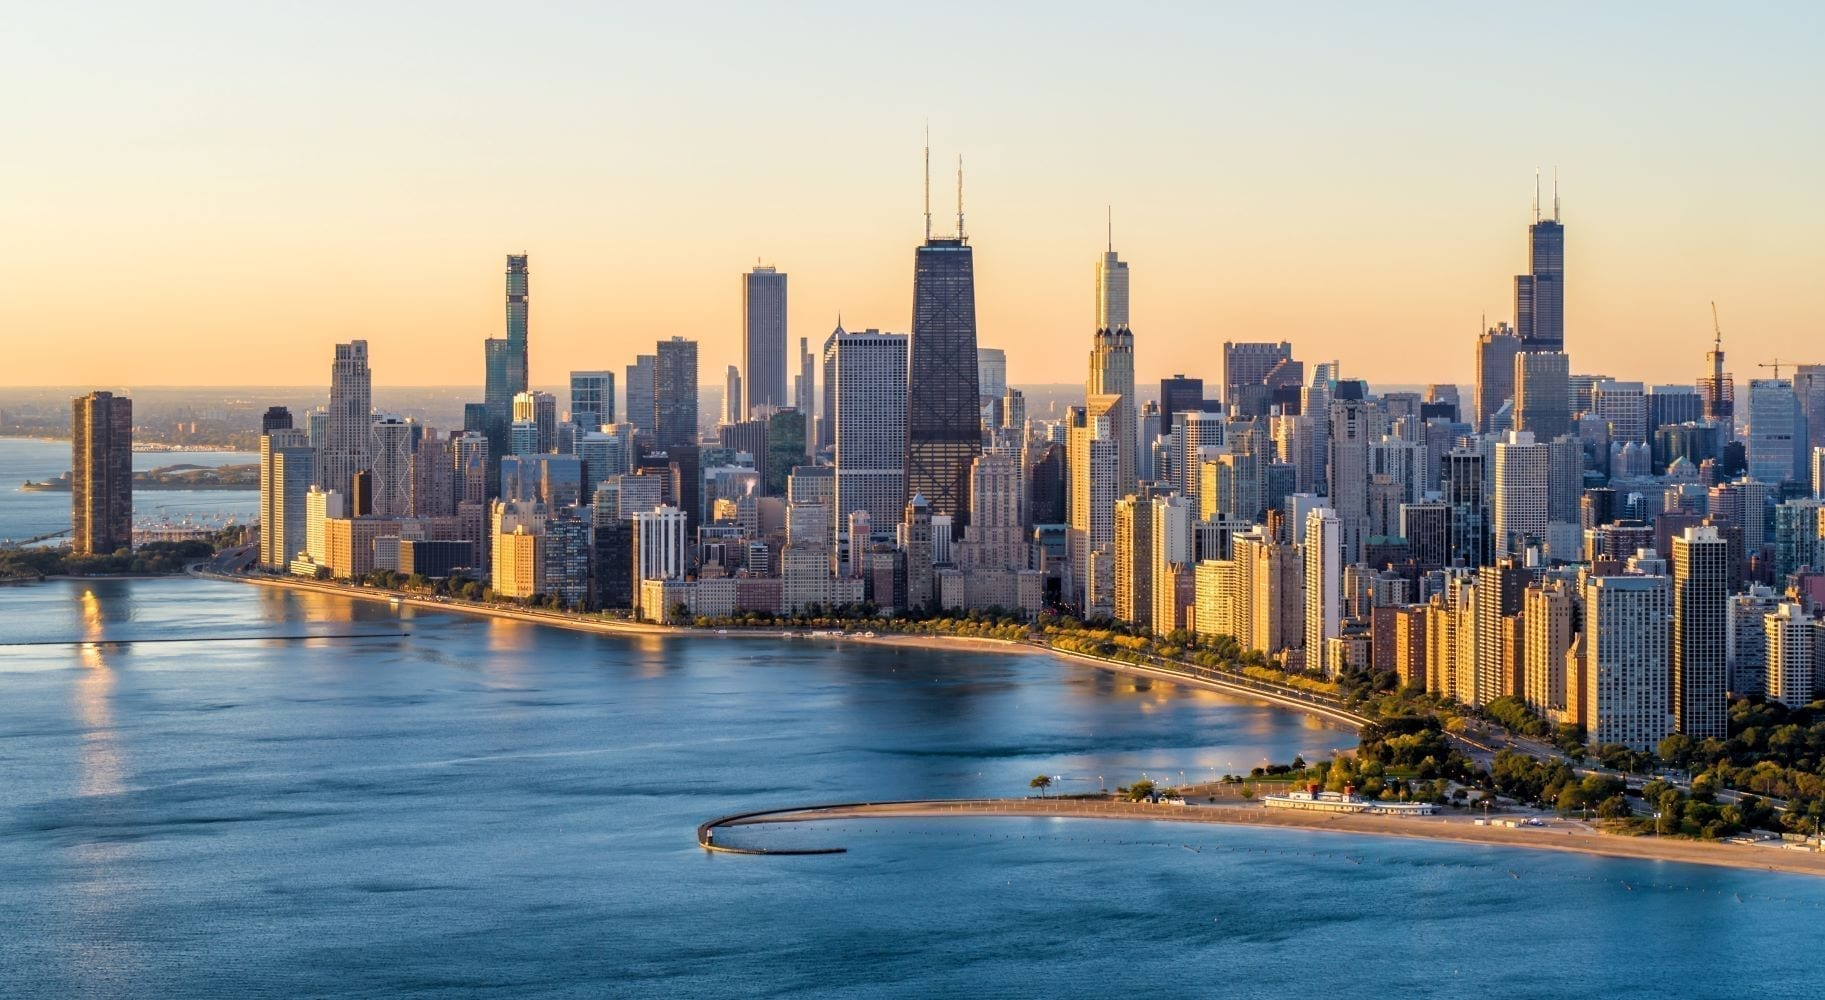 Chicago's downtown skyline and waterfront